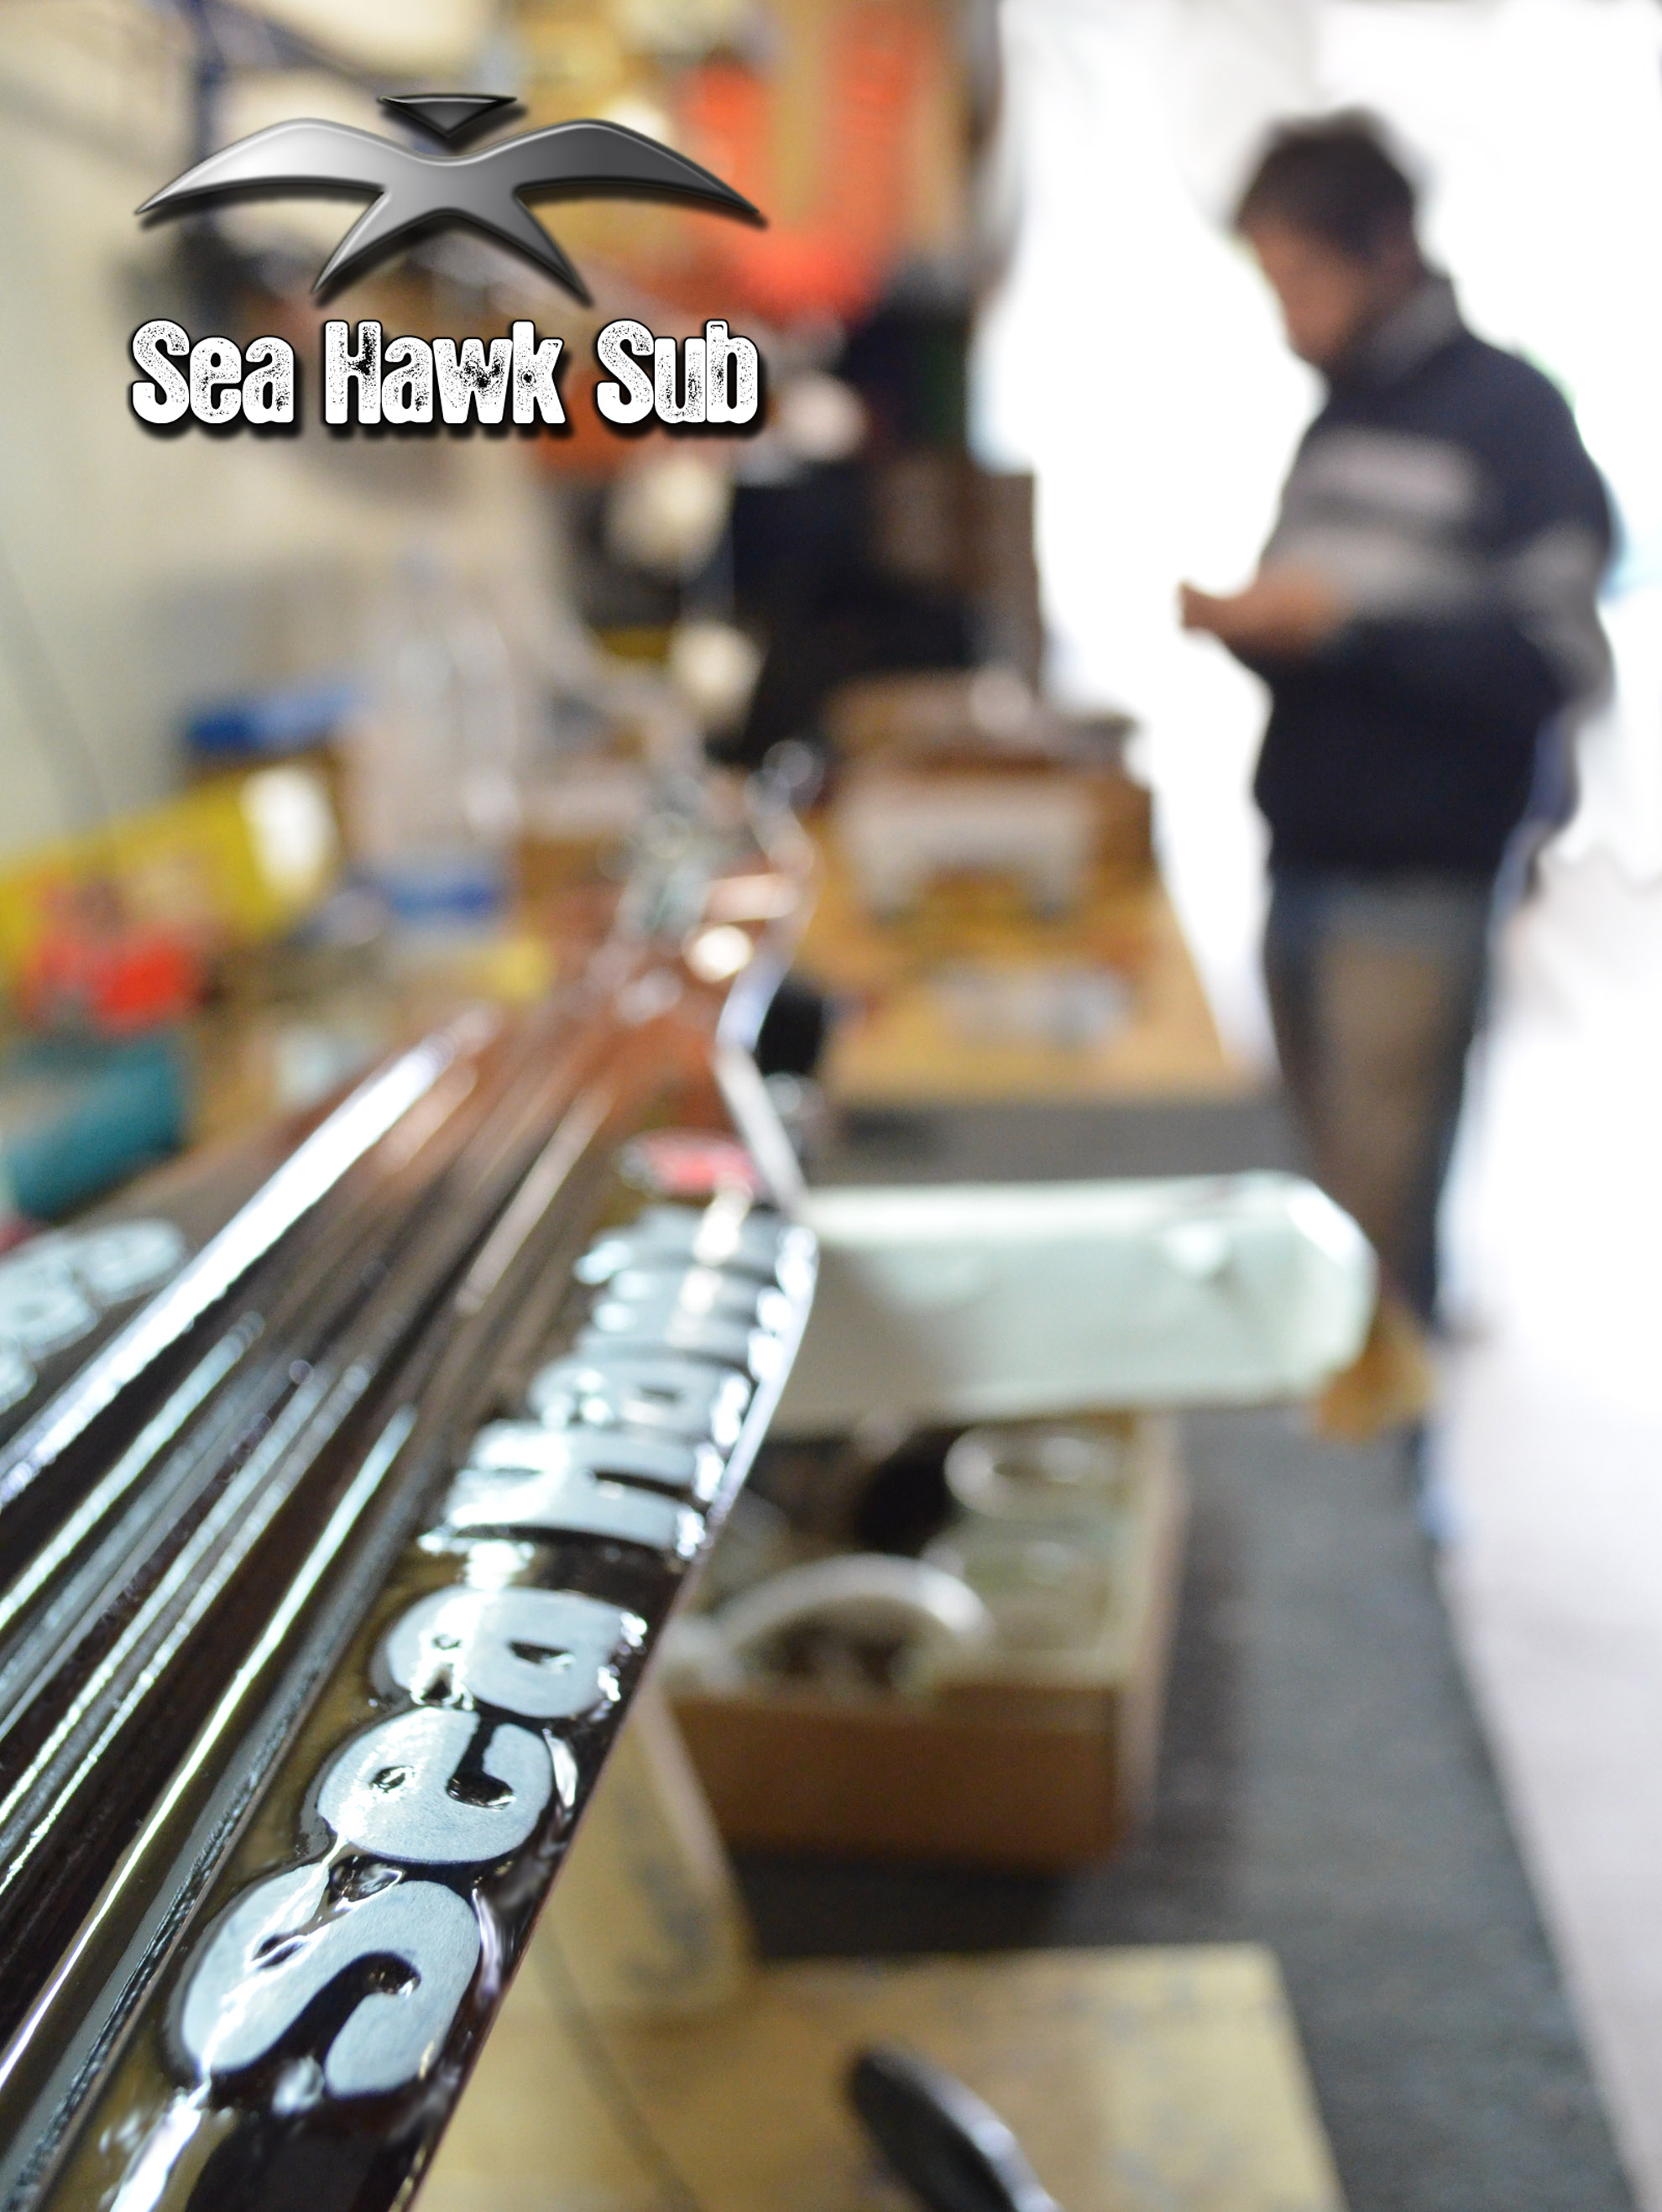 seahawksub Spearfishing pescasub